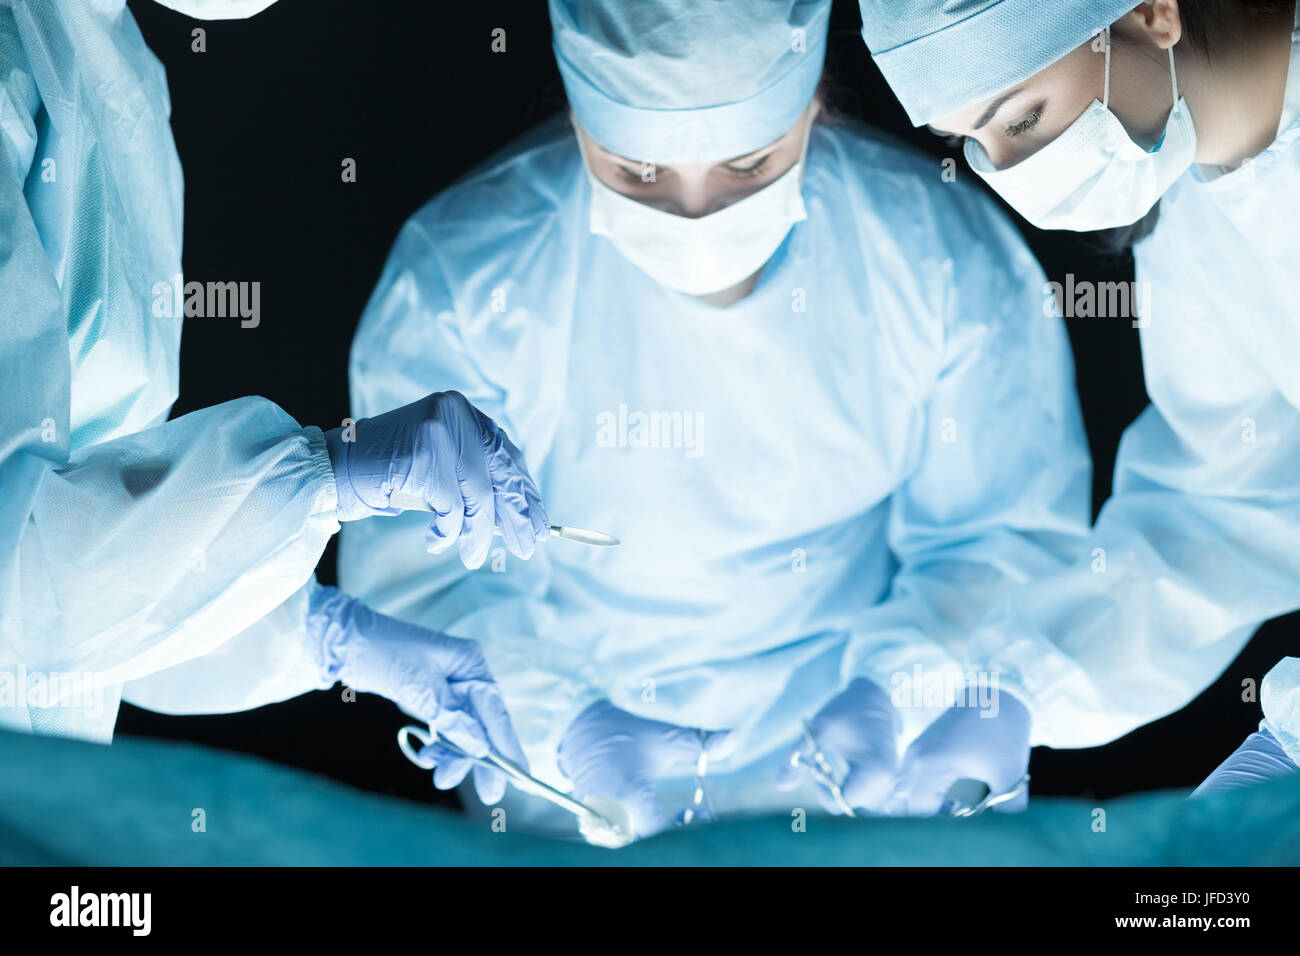 Medical team performing operation. Group of surgeon at work in operating theatre toned in blue - Stock Image